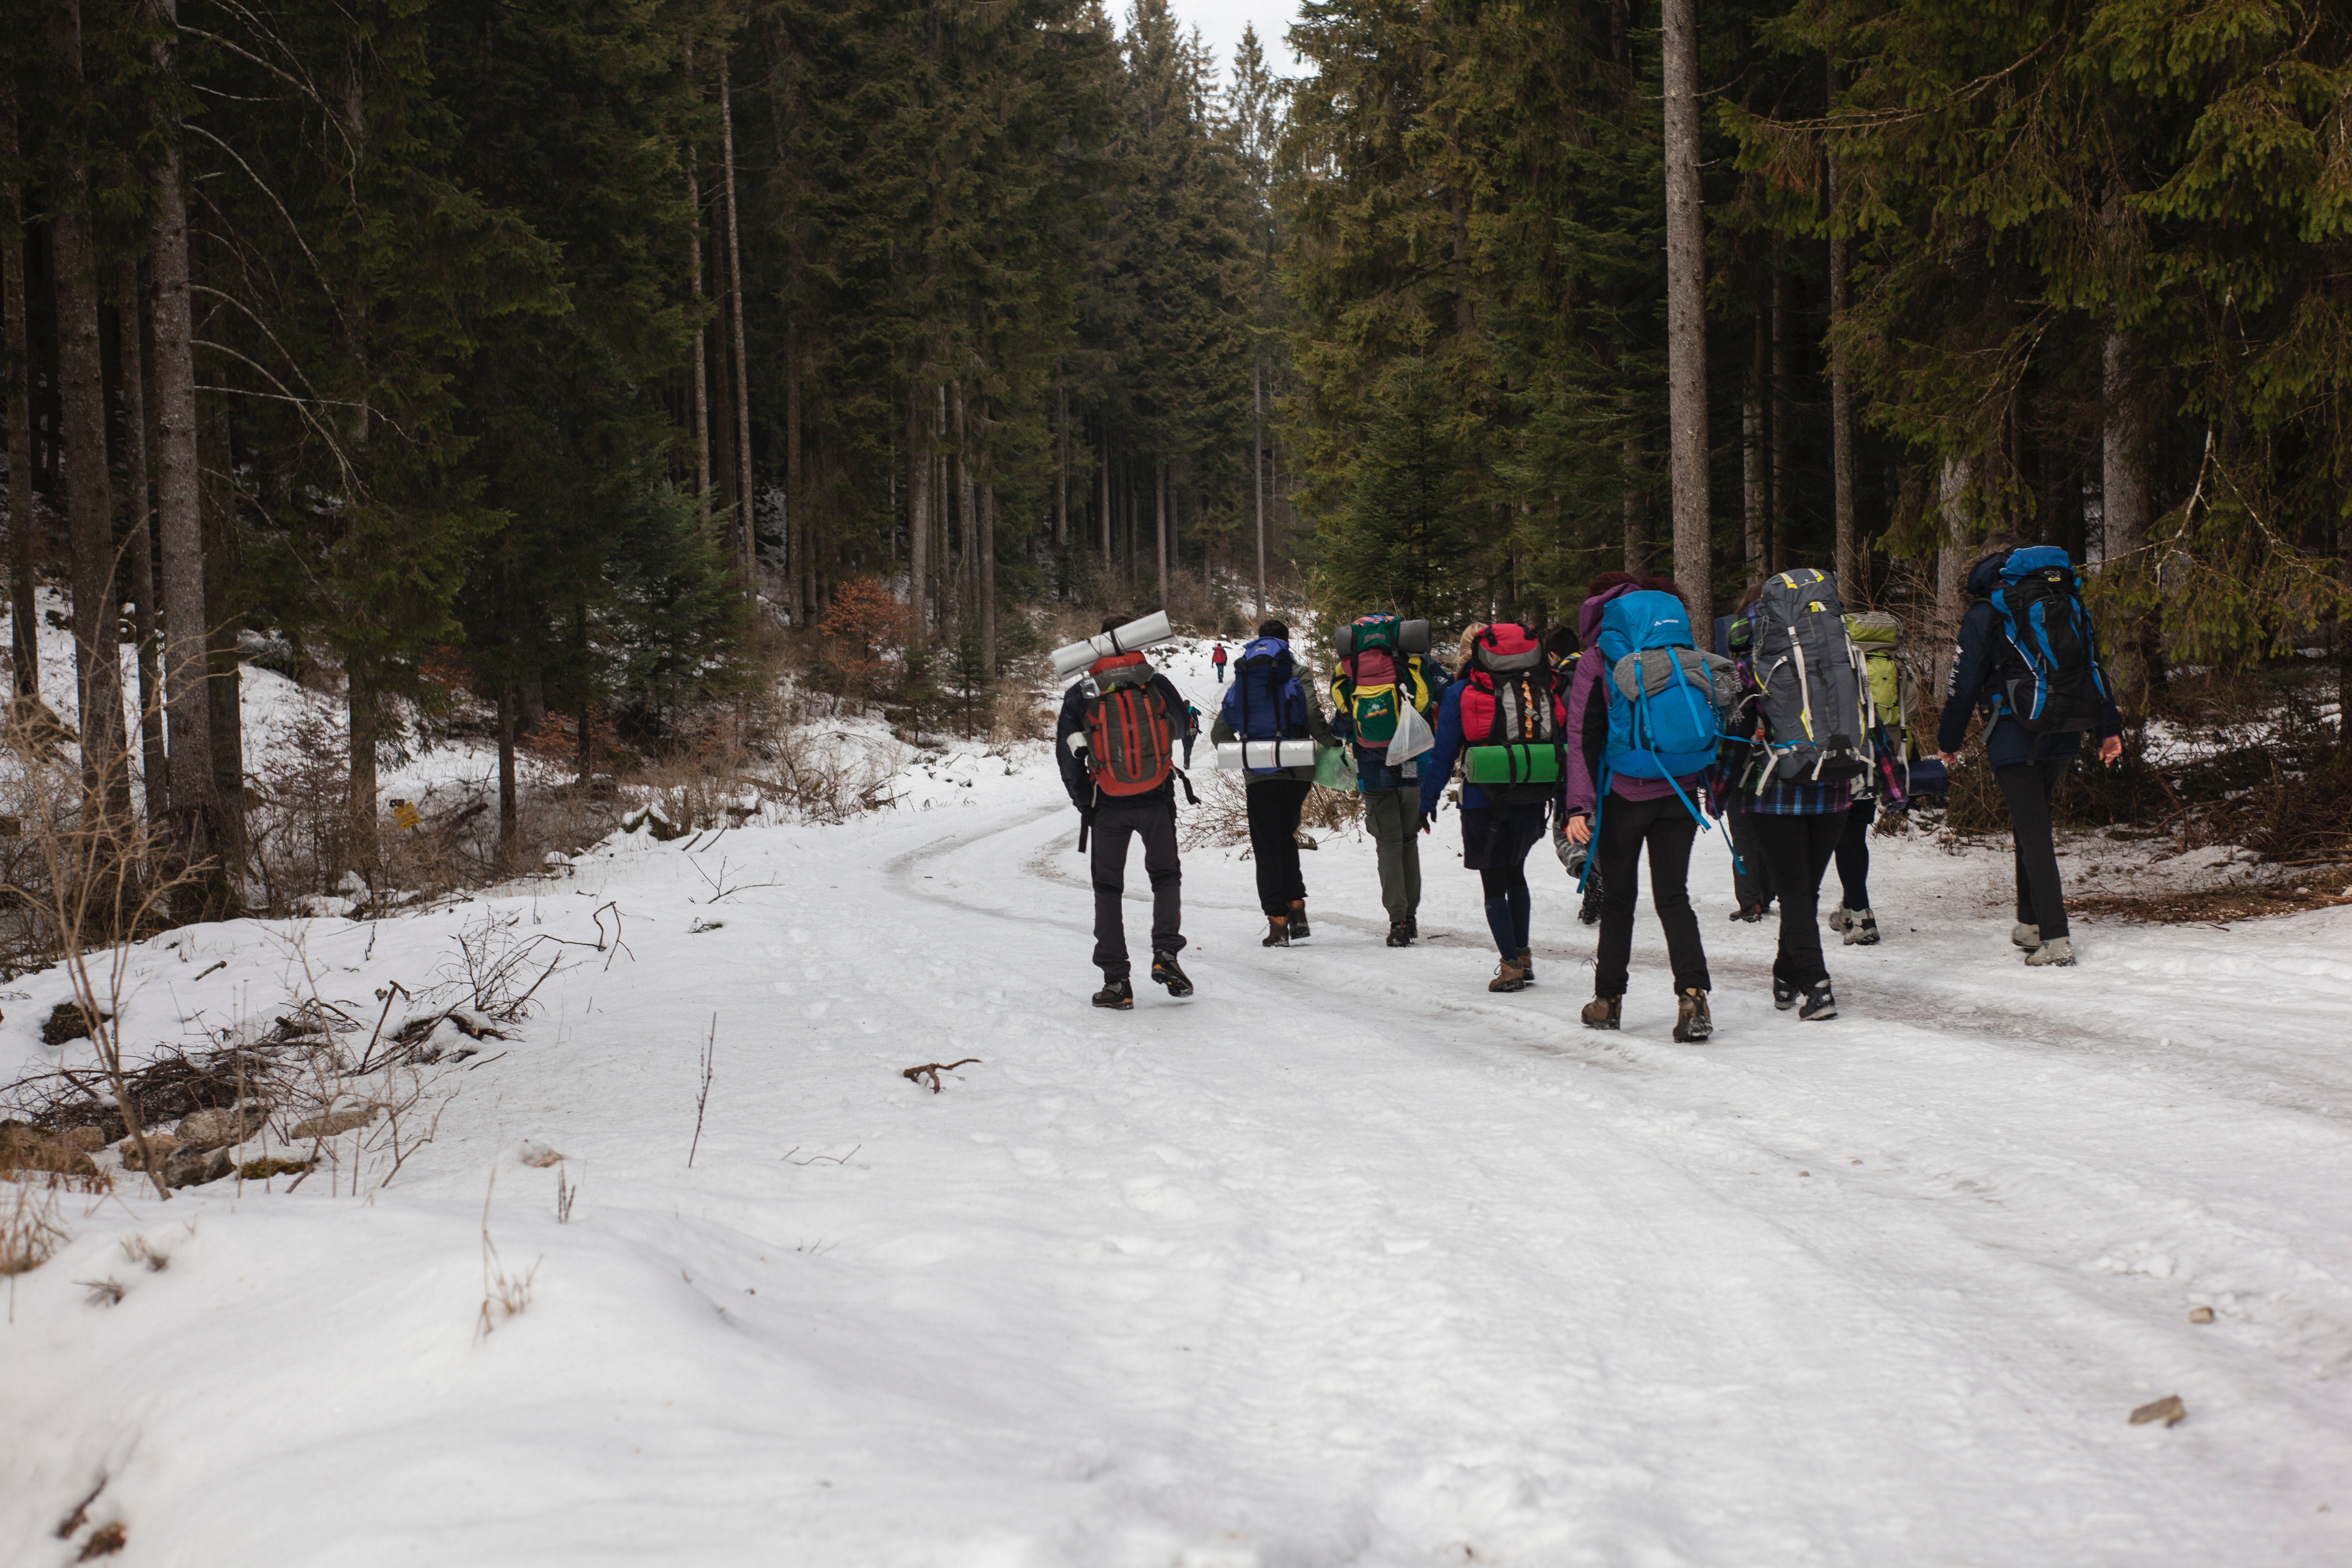 Mountaineers walking on snow photo